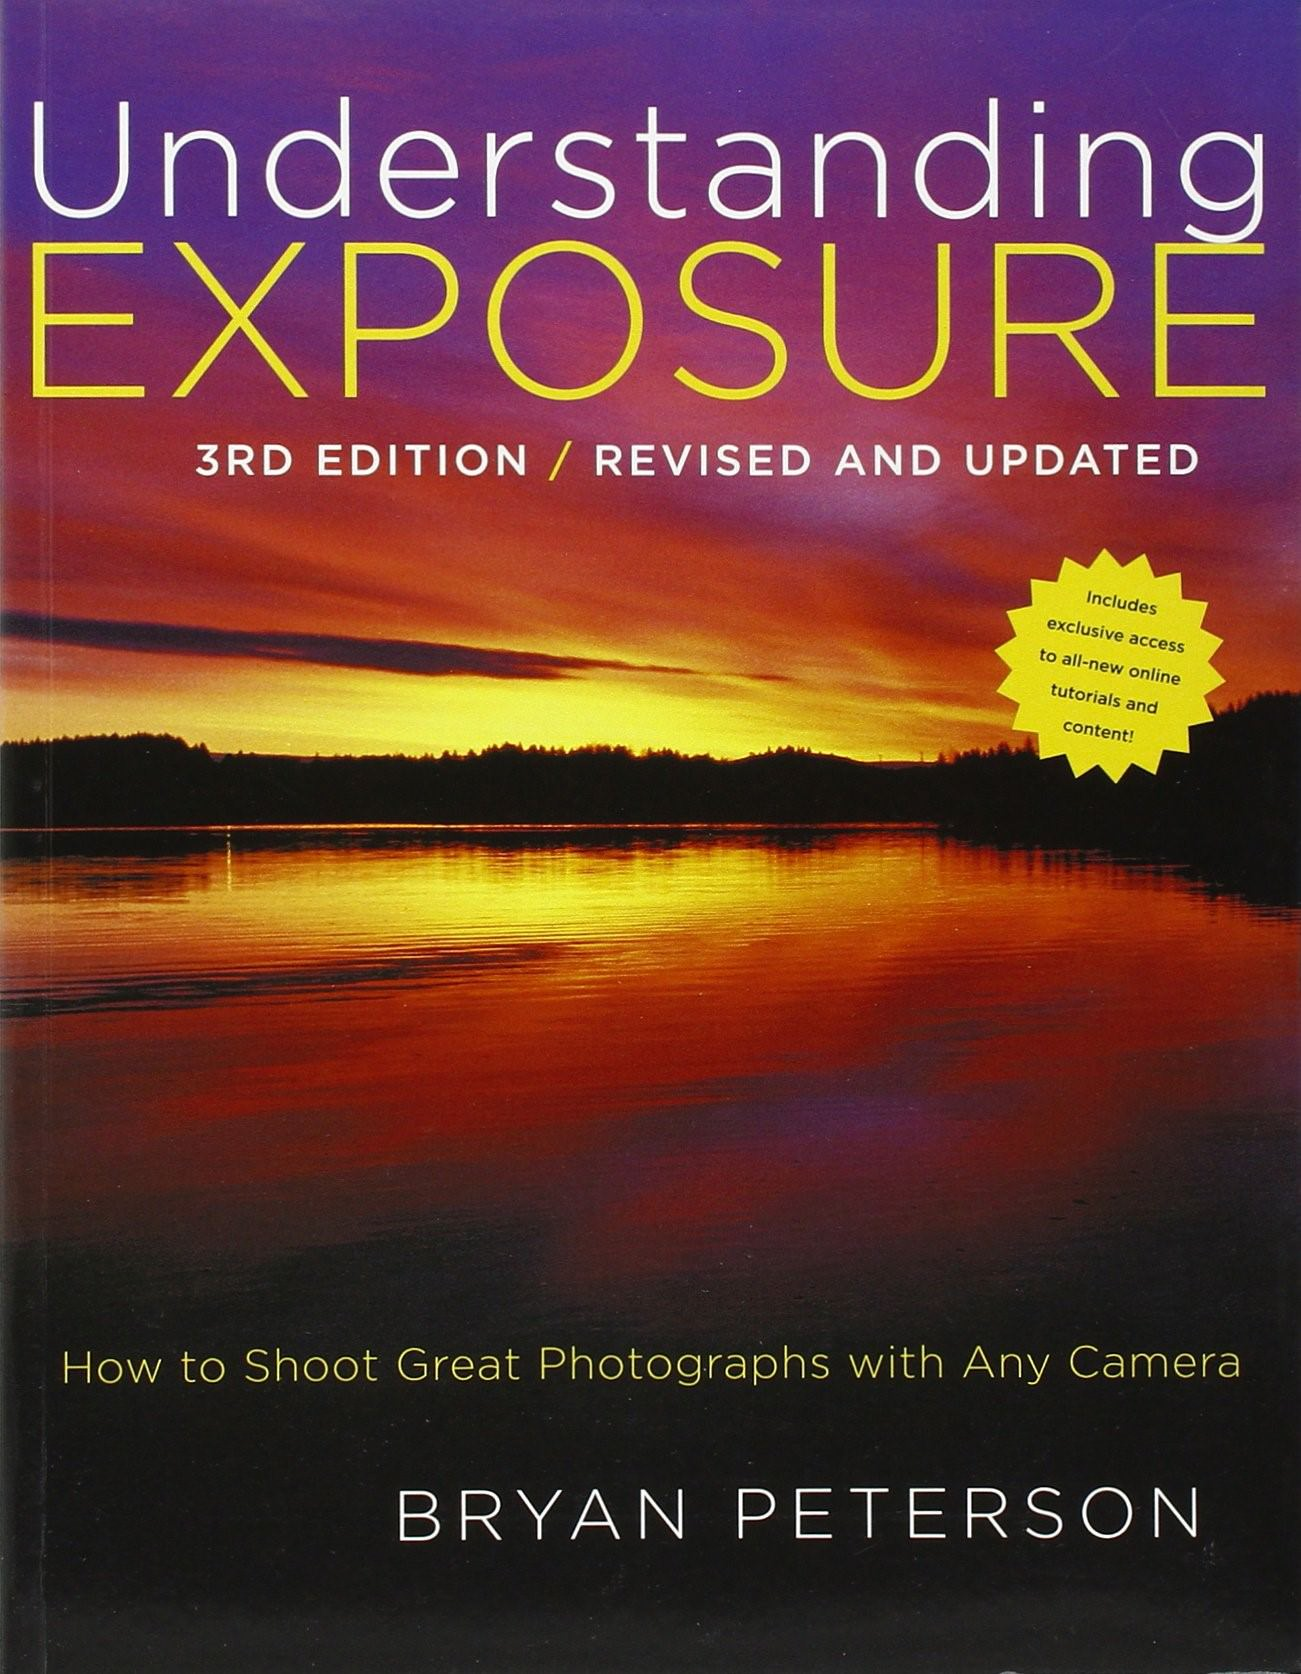 understanding exposure book cover image